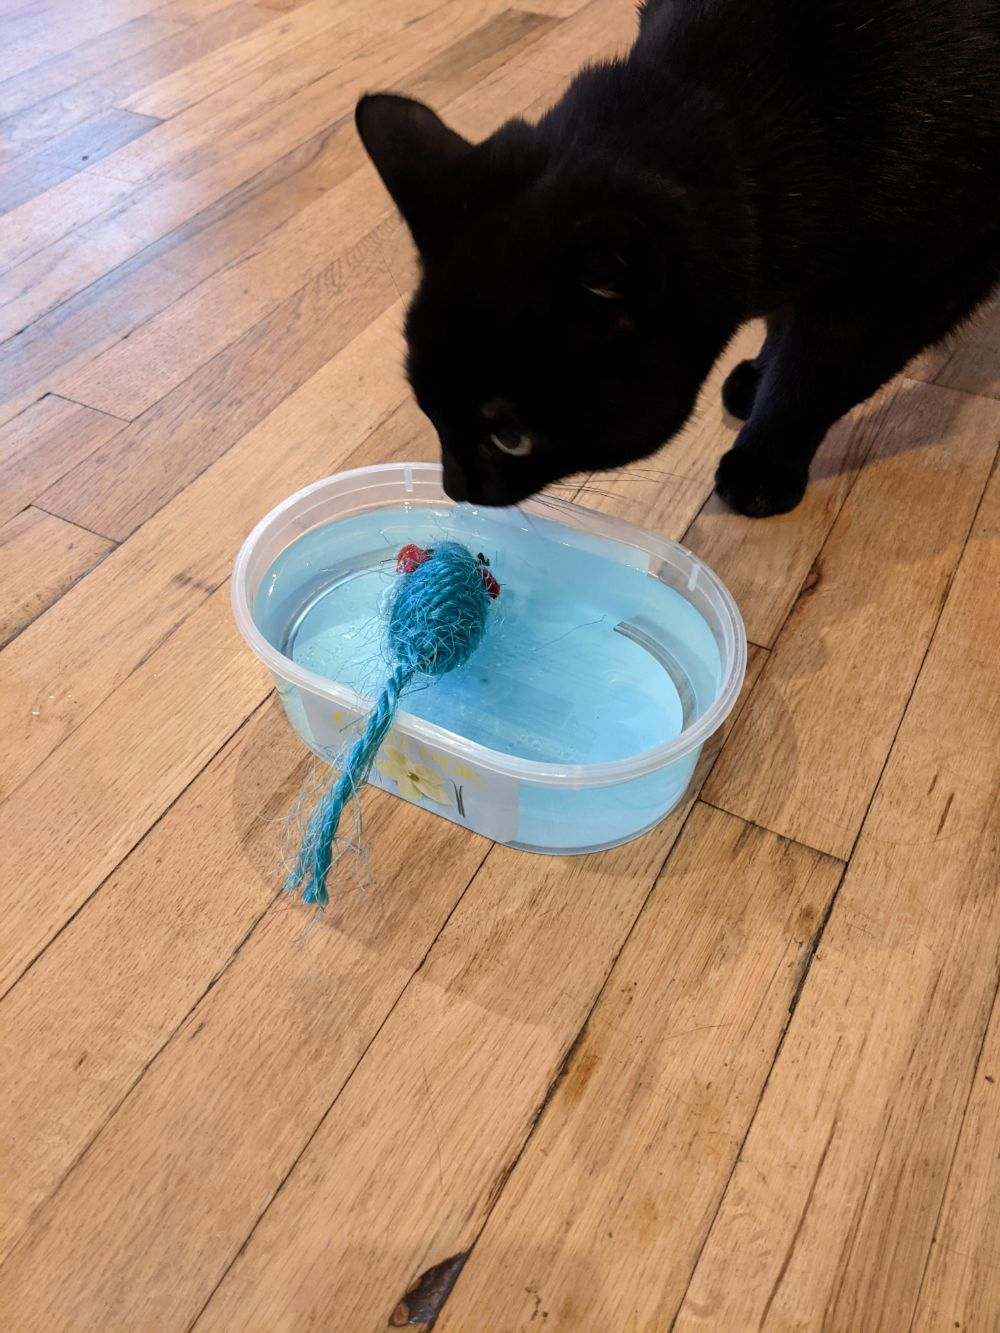 Black cat sniffing at his water bowl, in which a blue toy mouse is drowning